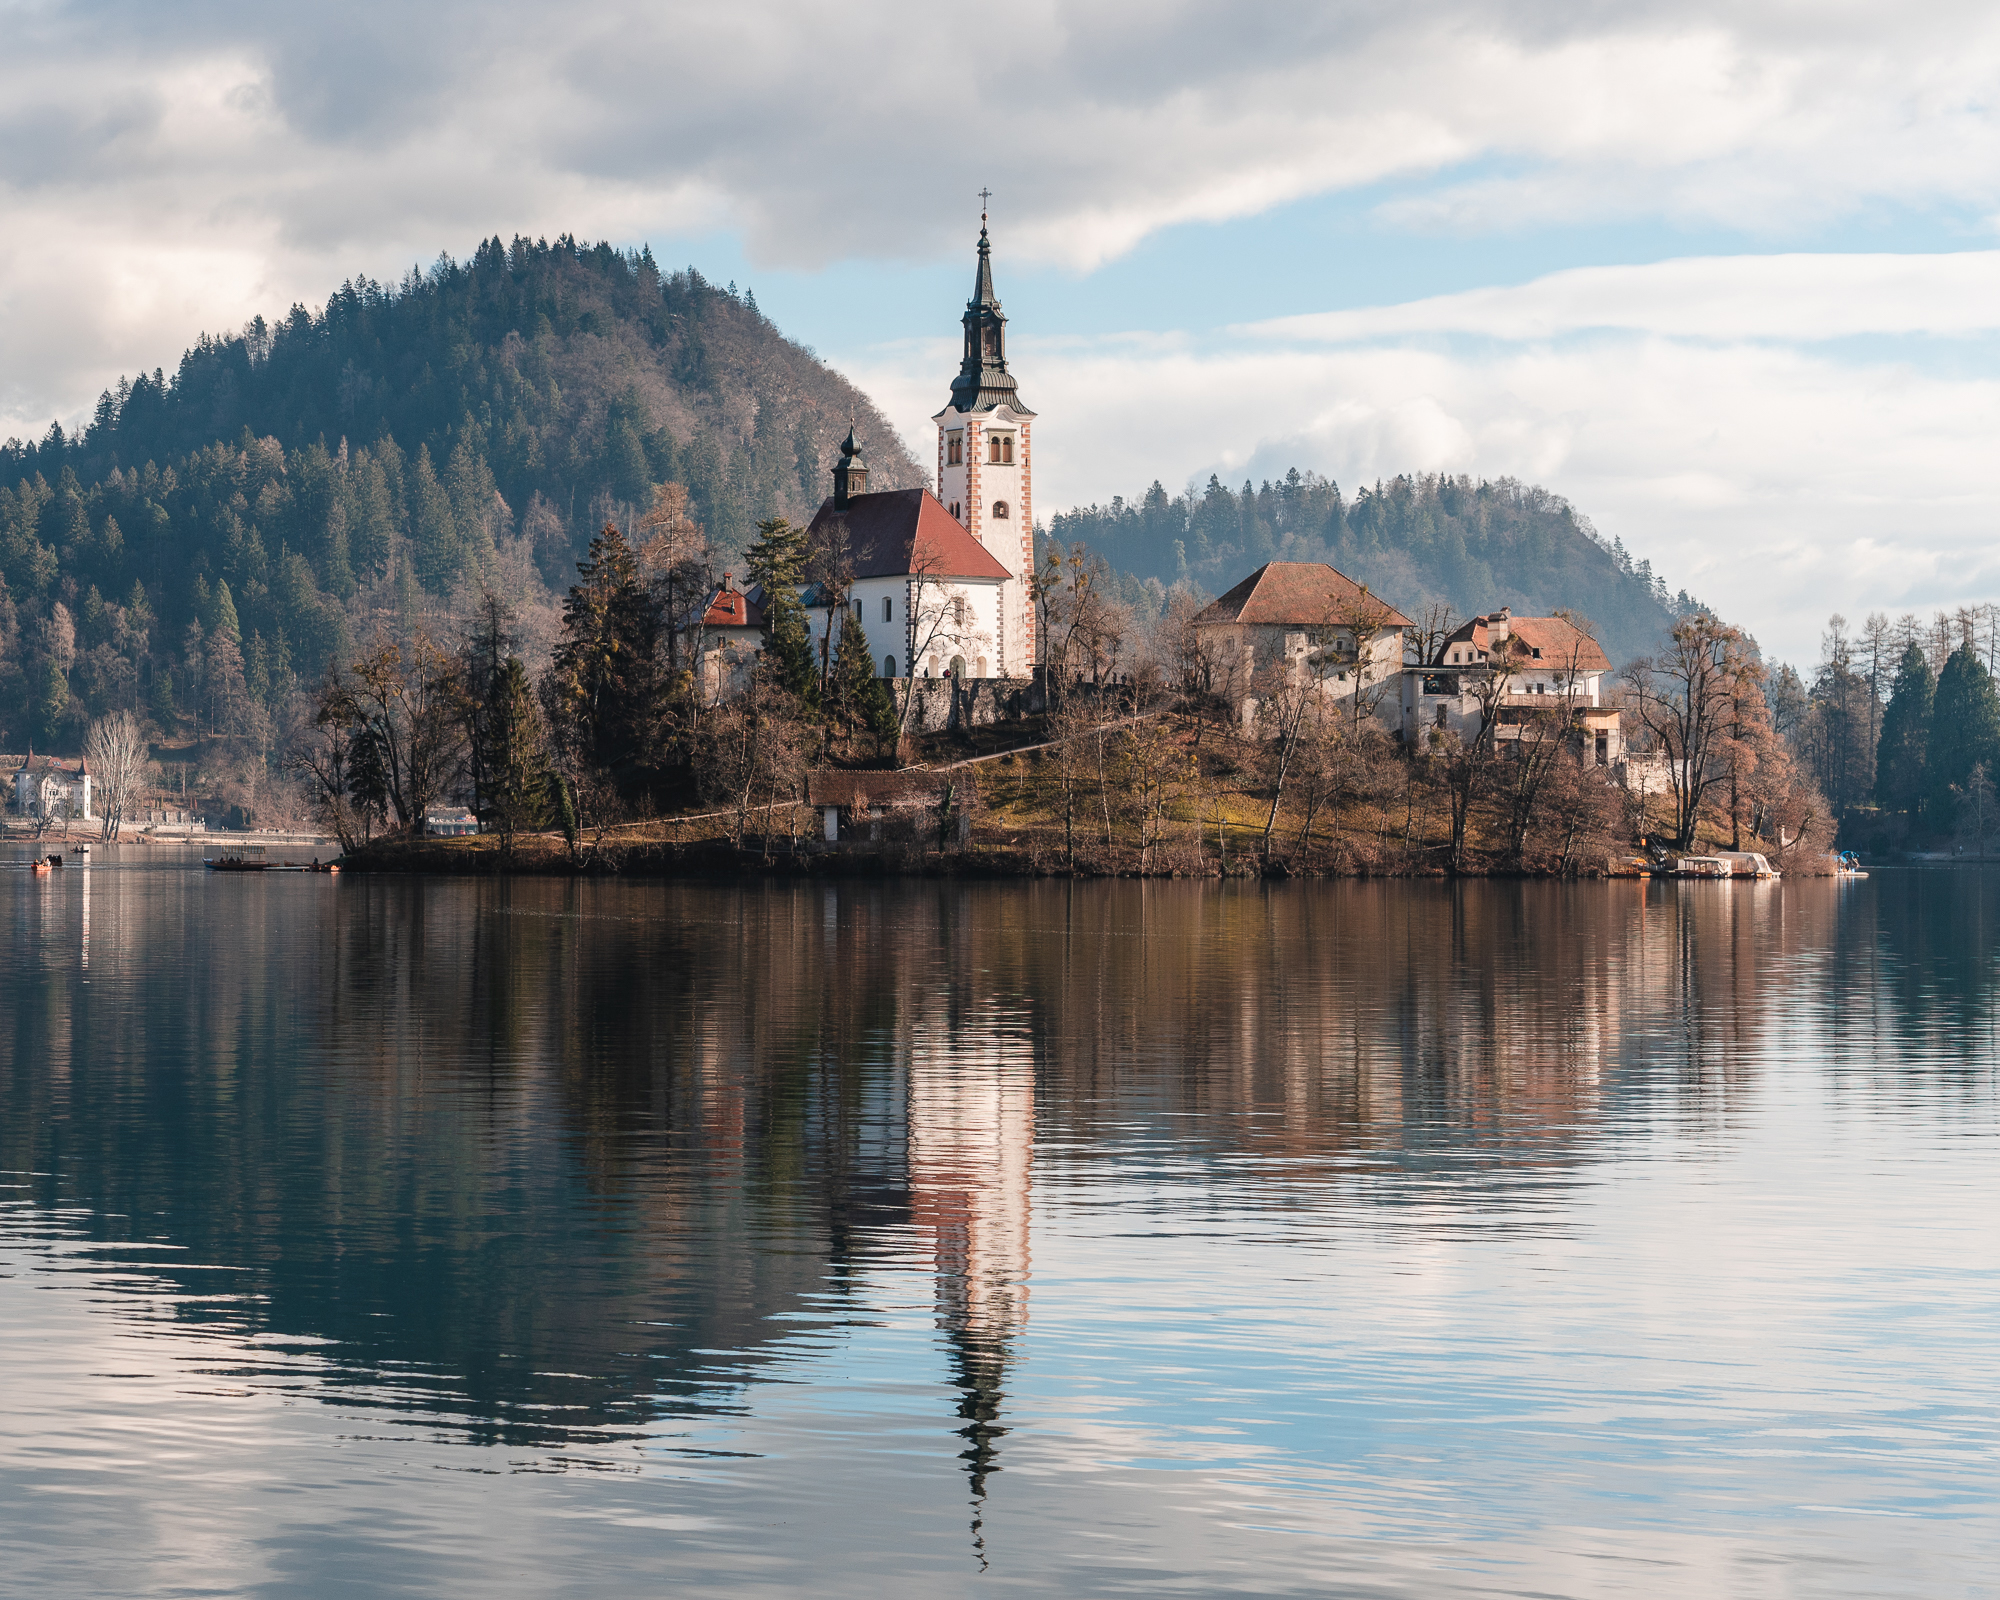 Assumption of Mary Pilgrimage Church on Lake Bled Island